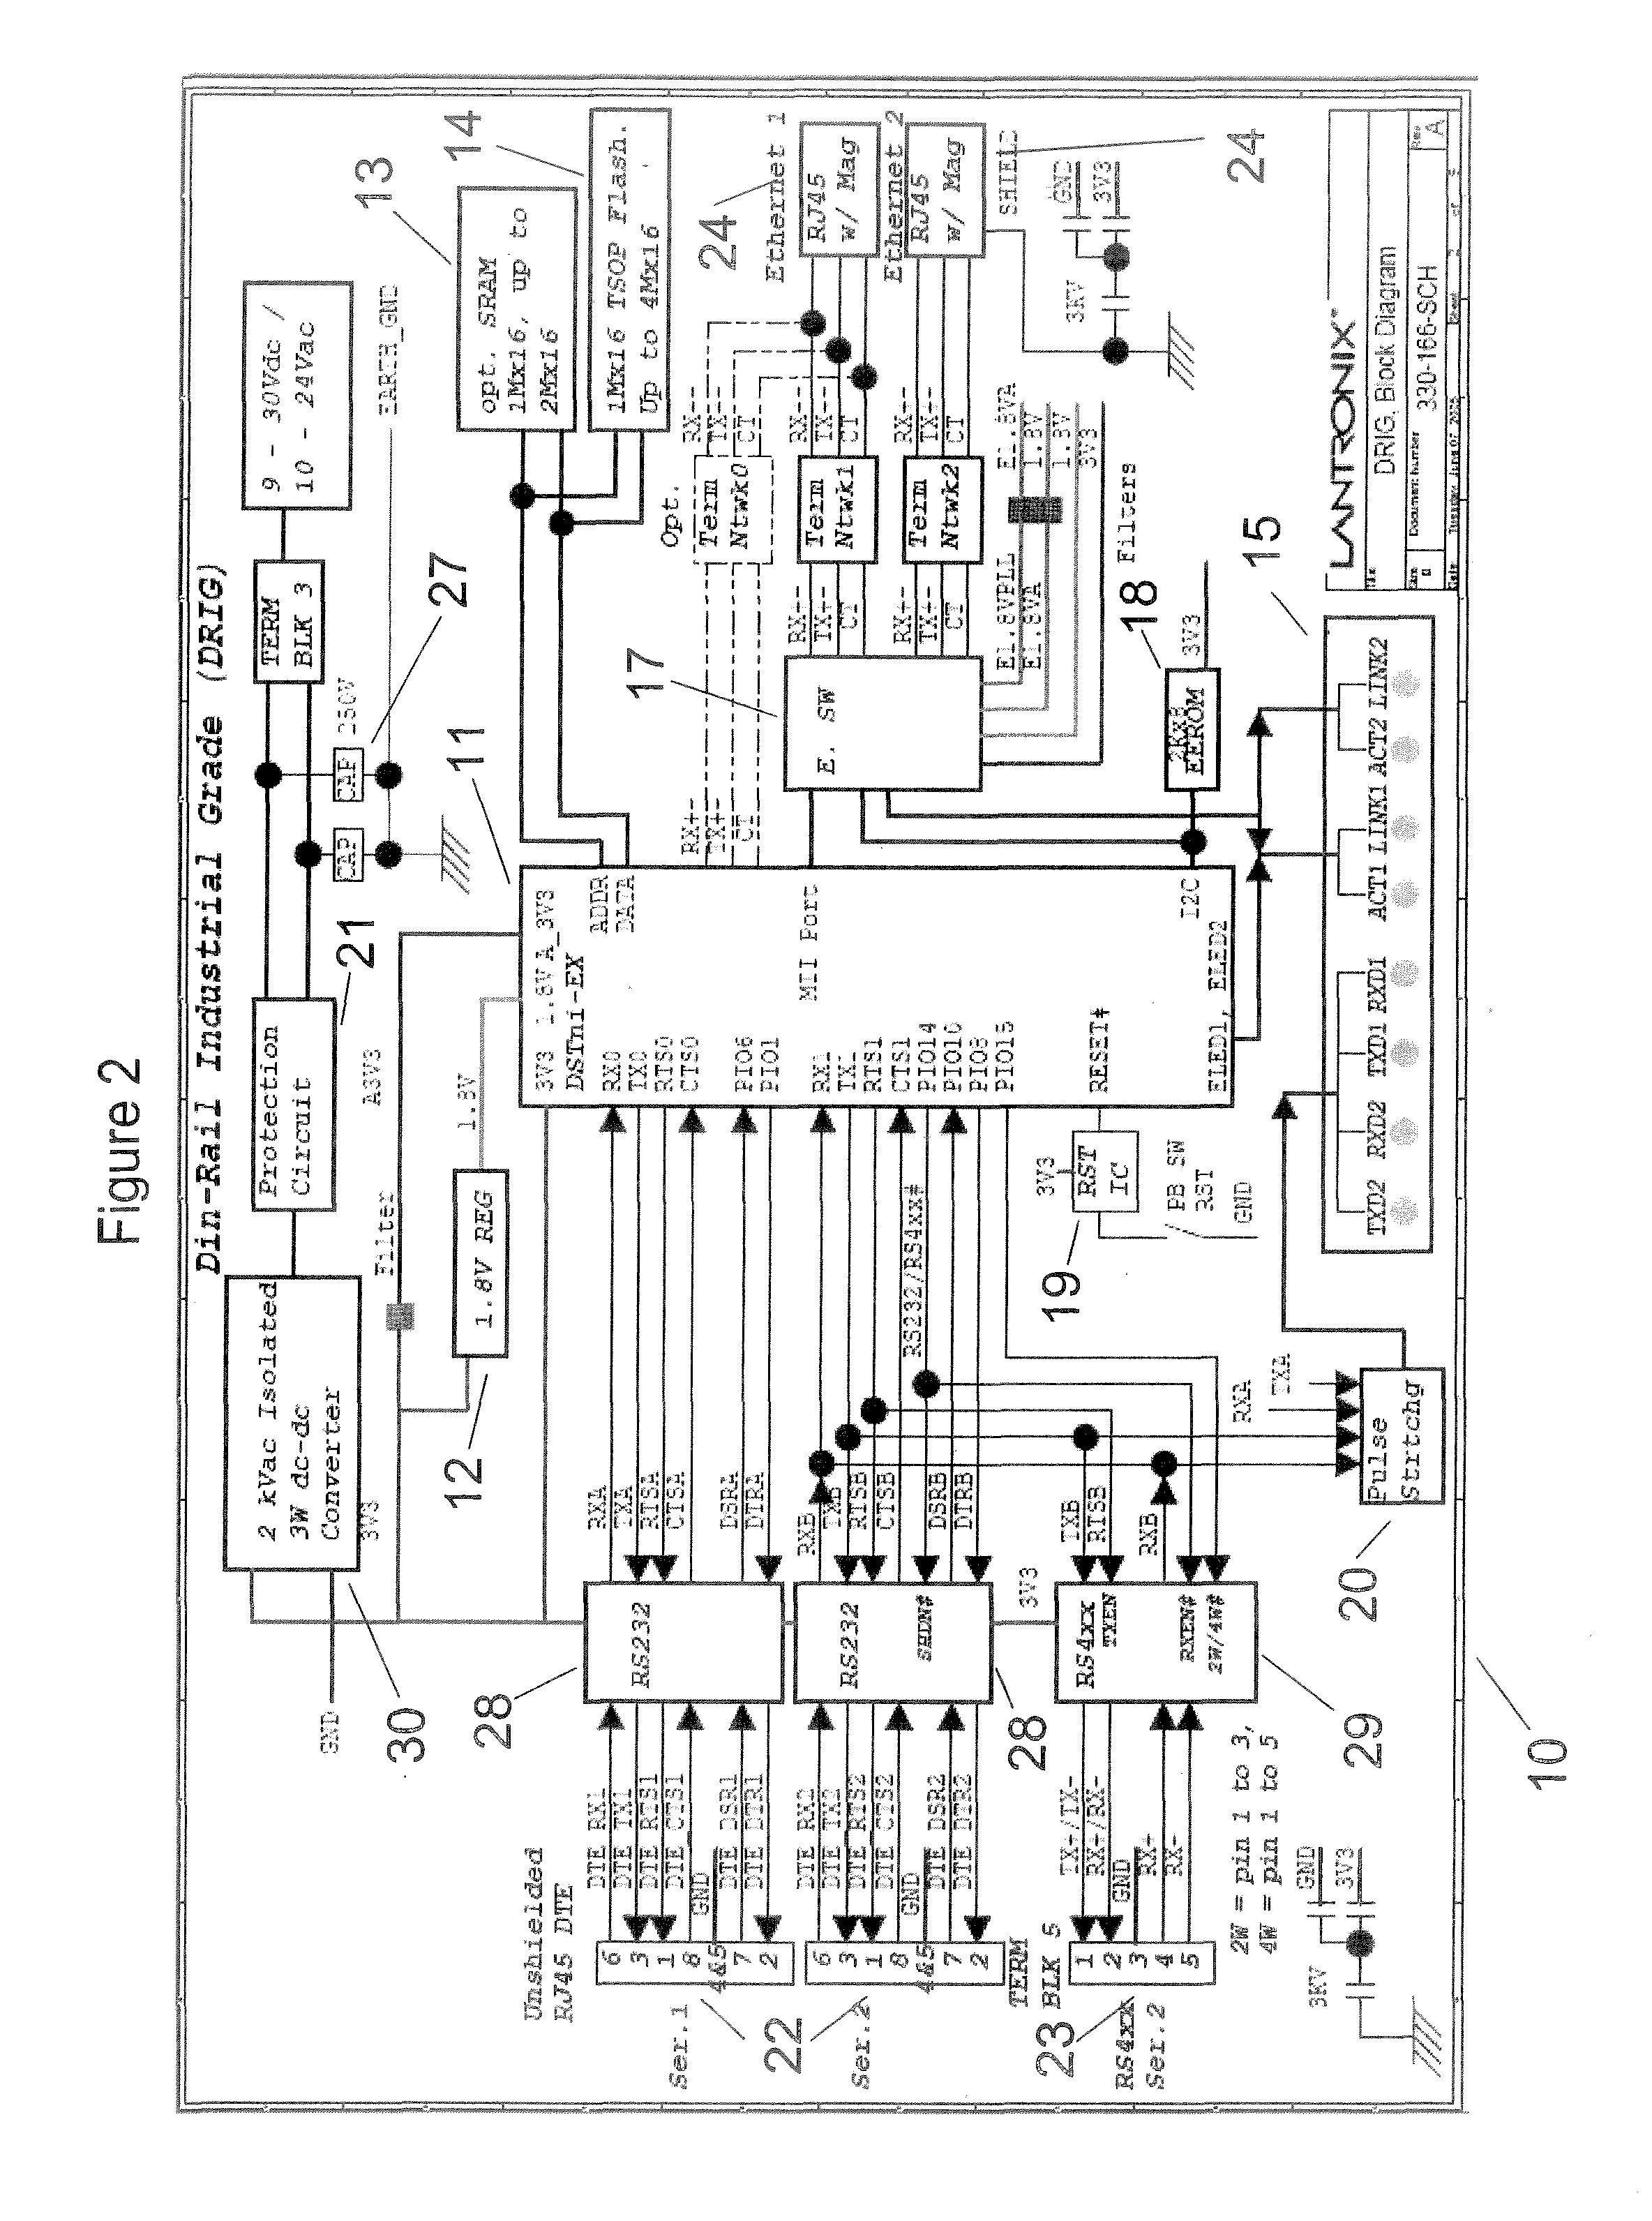 Rs485 Repeater Star Network Wire Diagram 40 Wiring Images Ethernet To Schematic Us08428054 20130423 D00002 Patent Us8428054 Daisy Chaining Device Servers Via Connector At Highcare